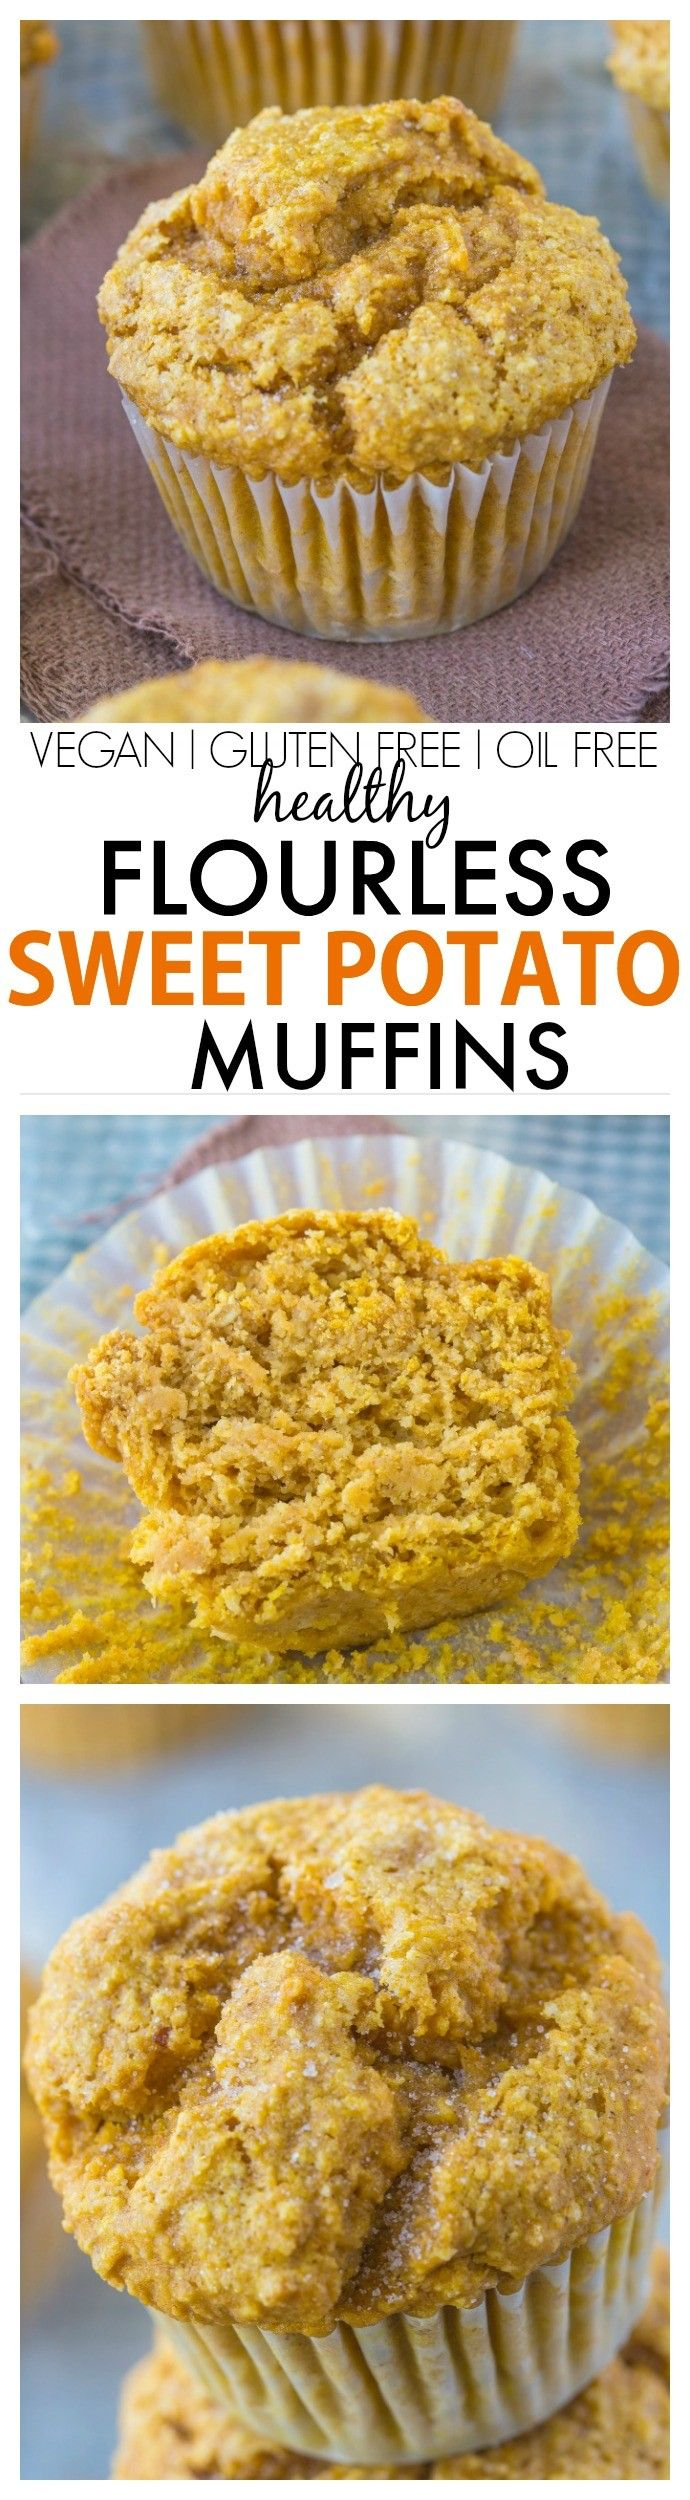 17 Best ideas about Sweet Potato Muffins on Pinterest ...